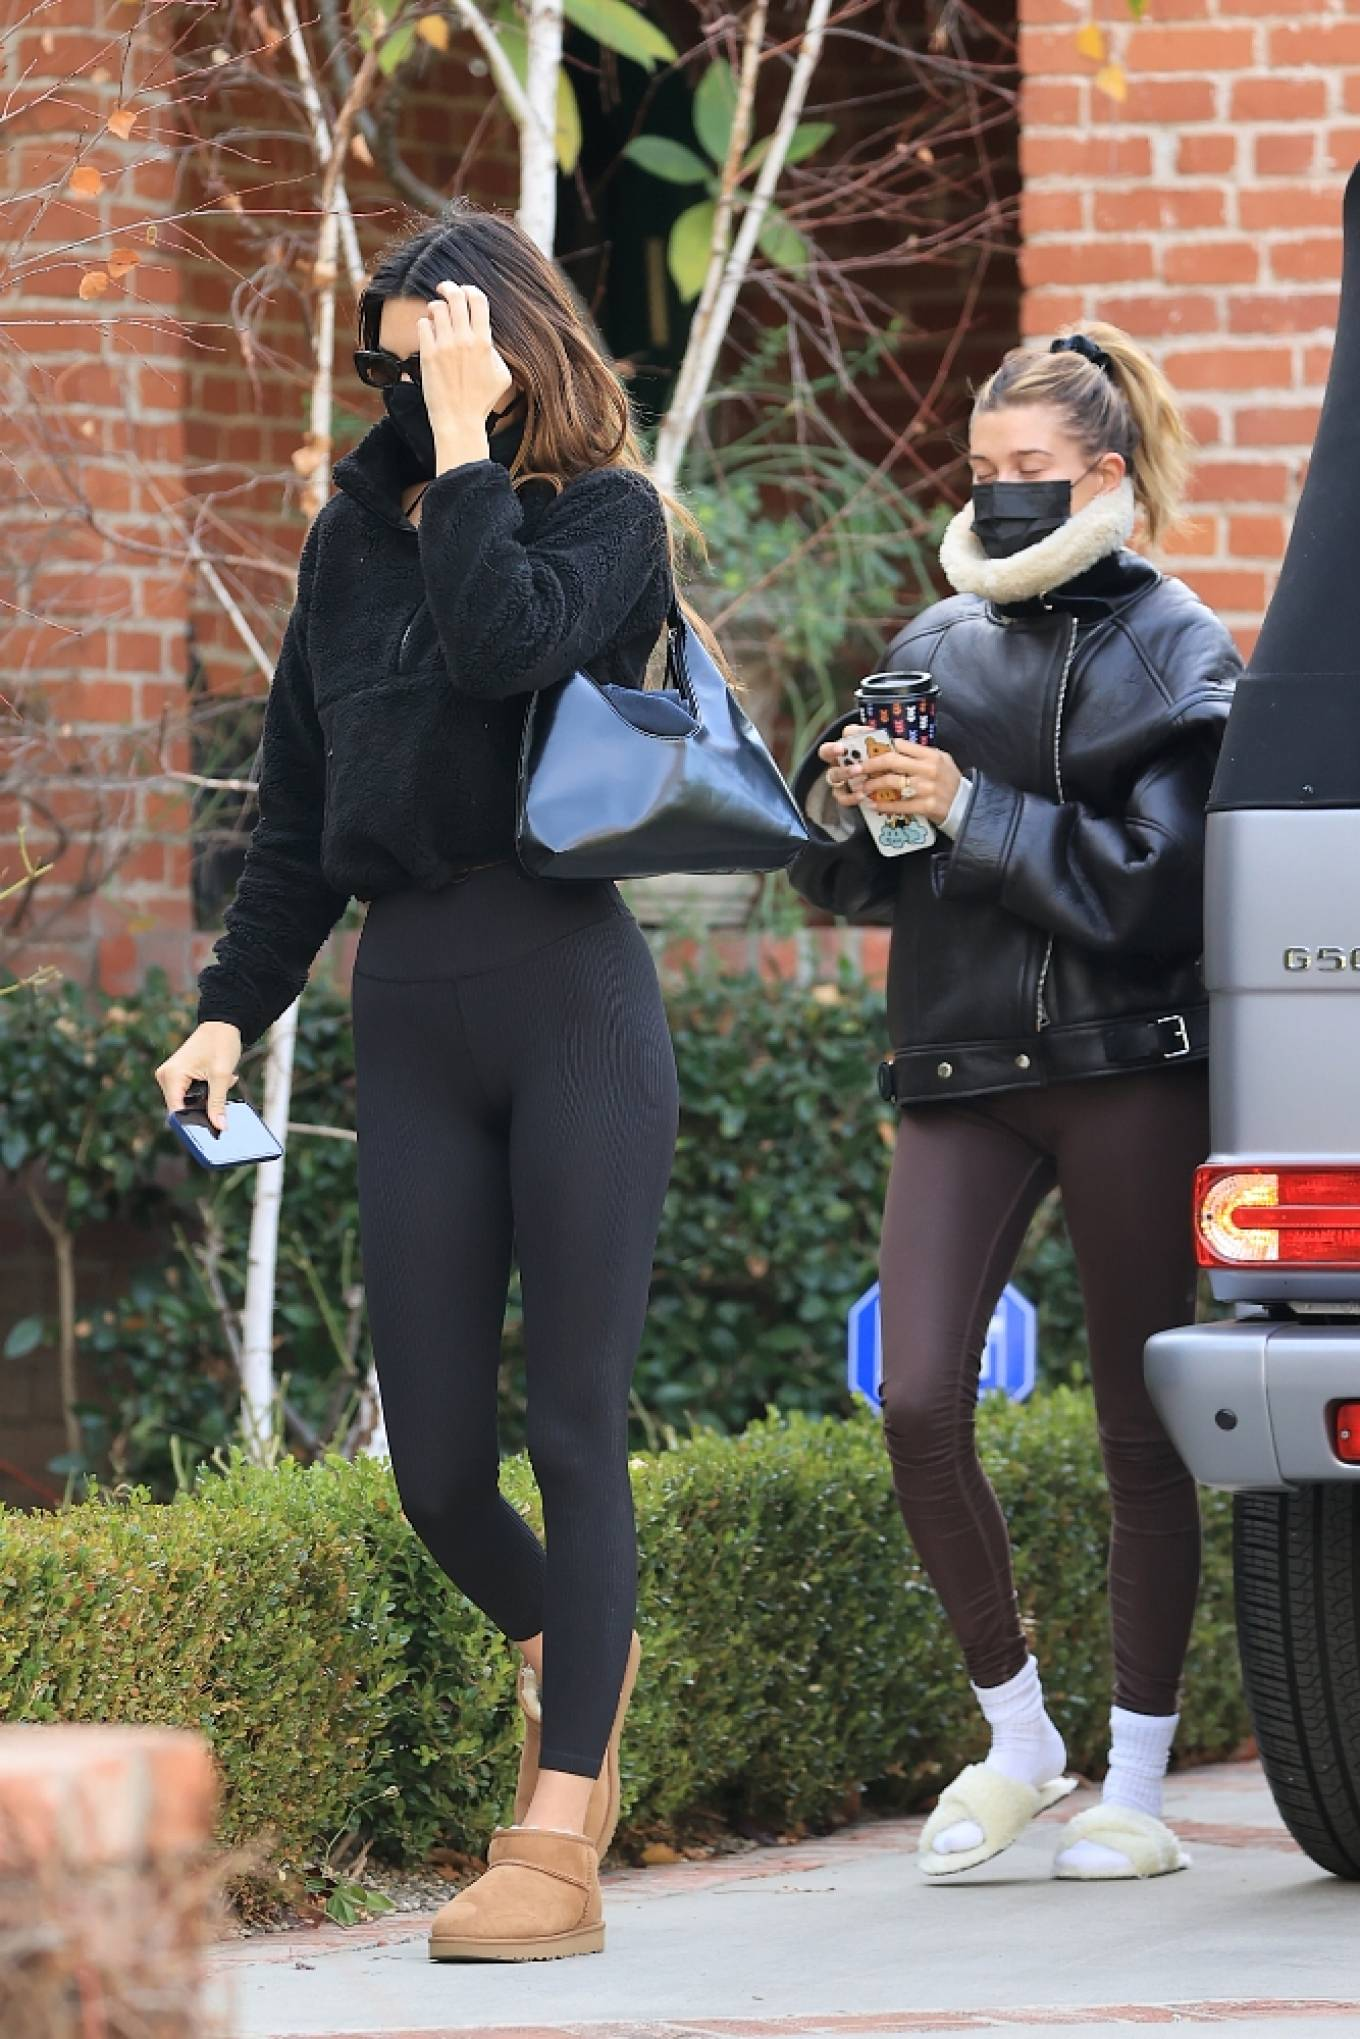 Hailey Bieber and Kendall Jenner - Out for a workout session in Los Angeles